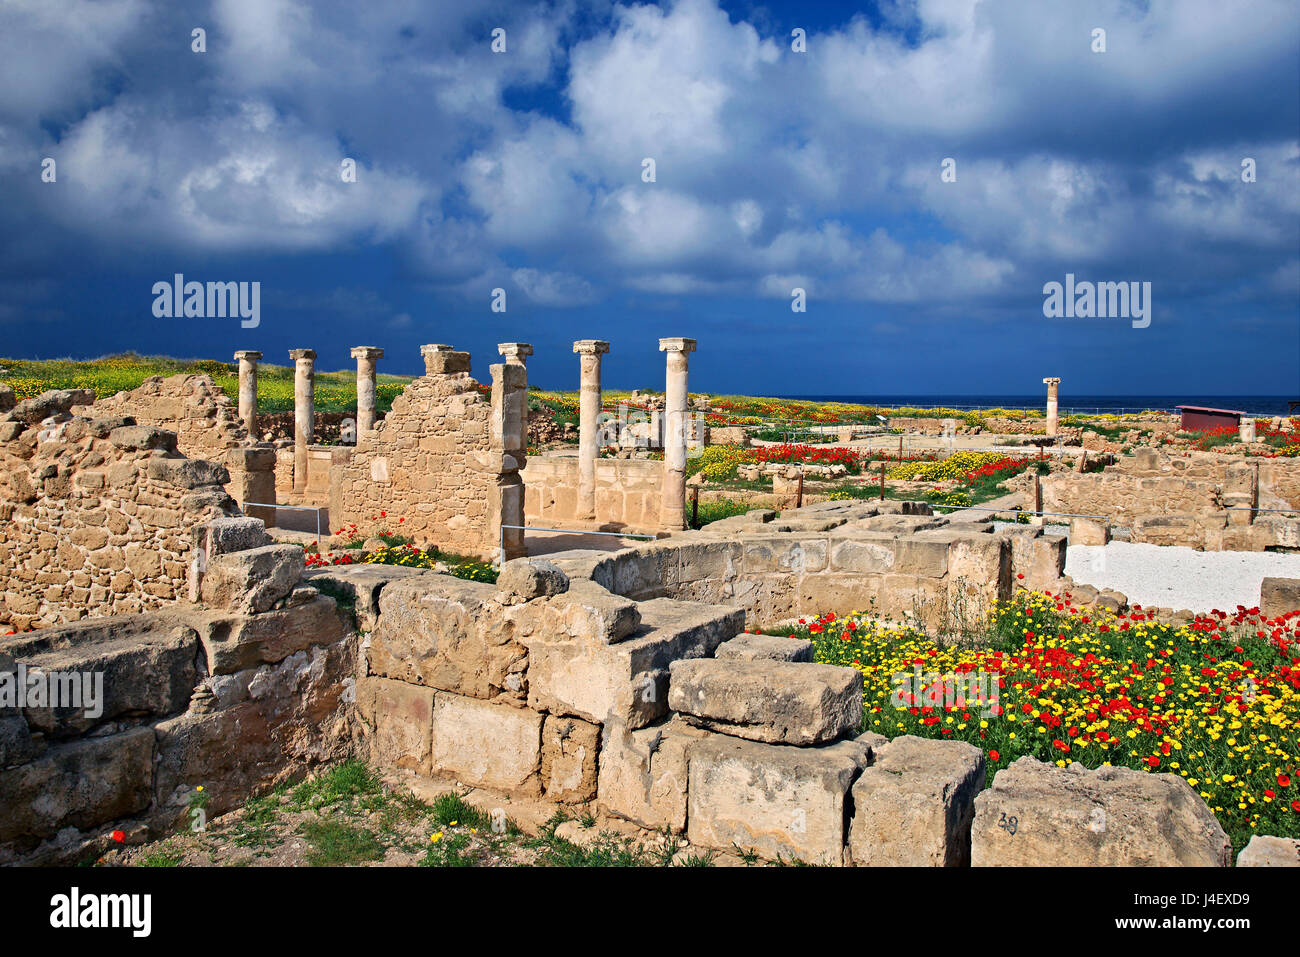 The 'House of Theseus' at the Archaeological Park of Paphos (UNESCO World Heritage Site) Cyprus. - Stock Image